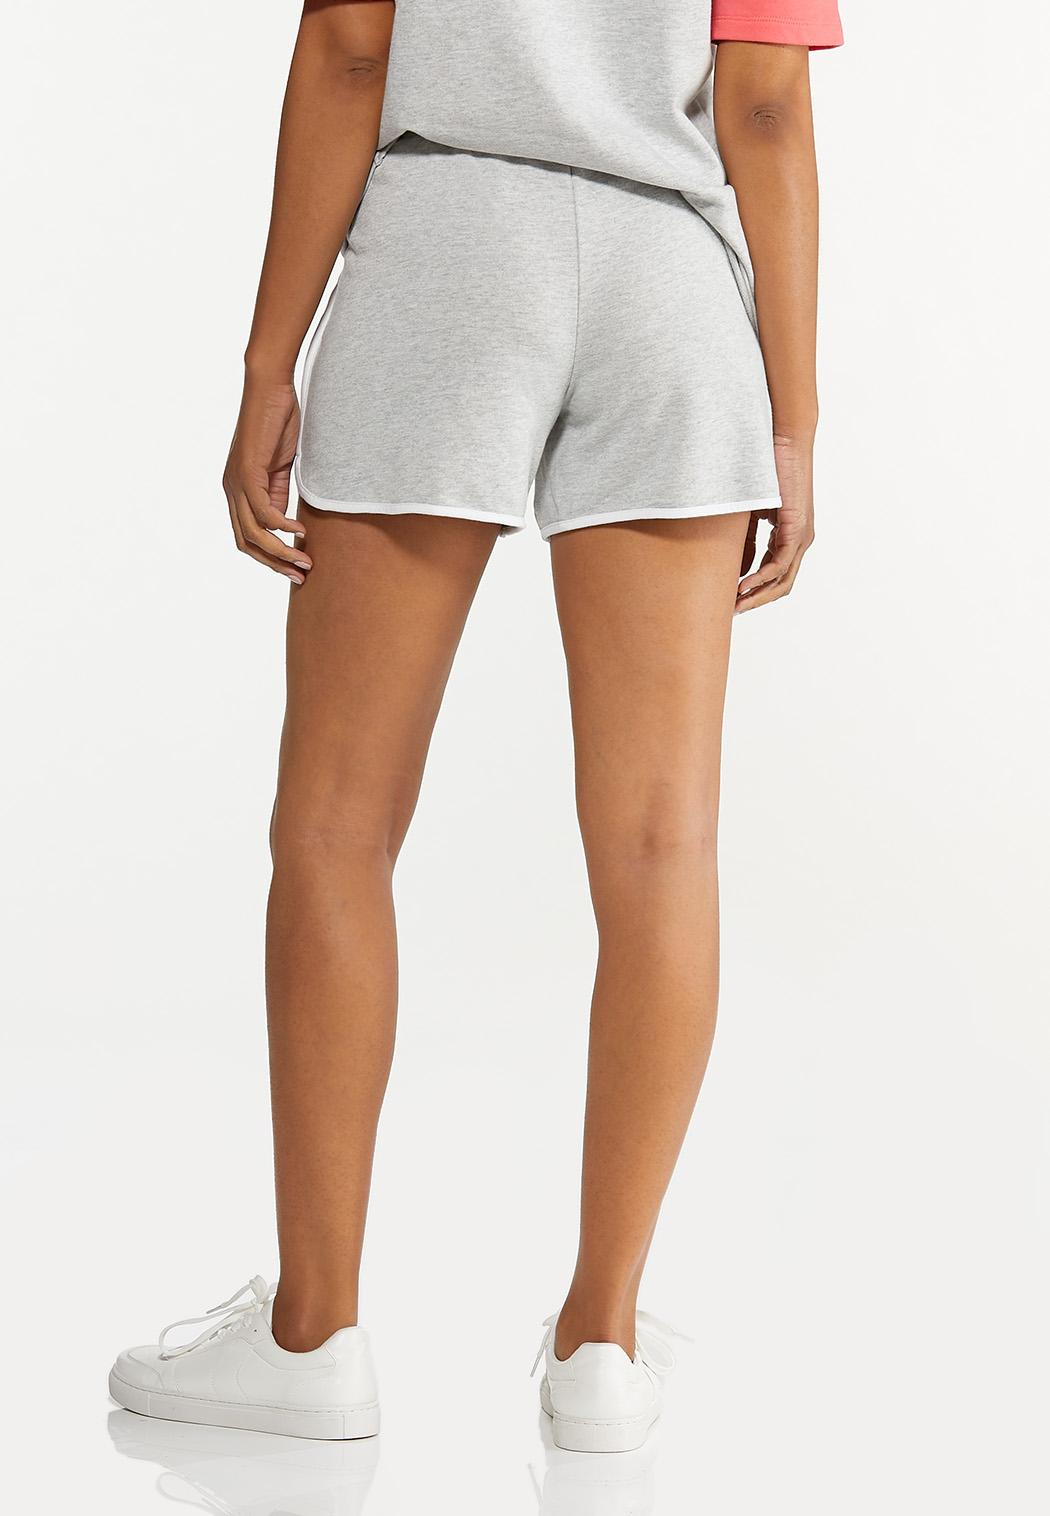 French Terry Dolphin Shorts (Item #44602599)